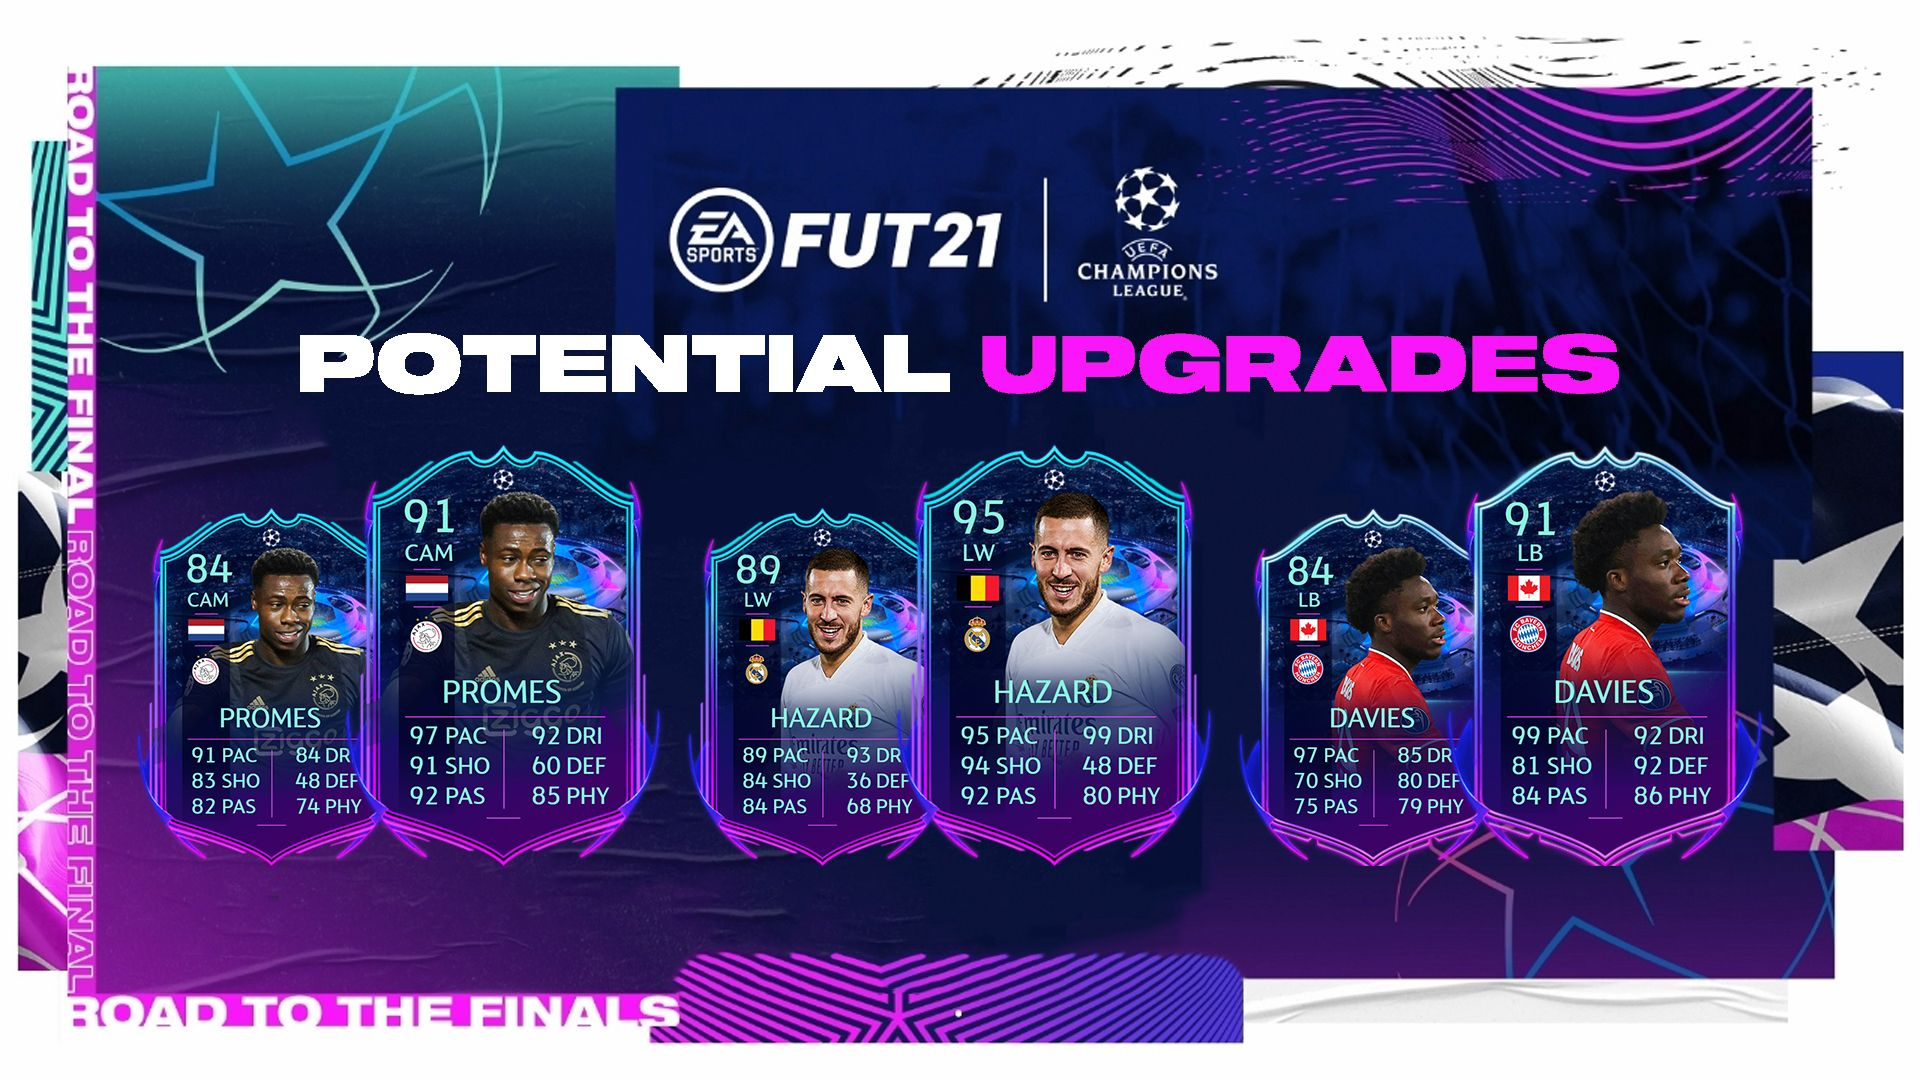 fifa 21 ucl road to the final upgrades how they work potential upgrades for rttf fifa 21 ucl road to the final upgrades